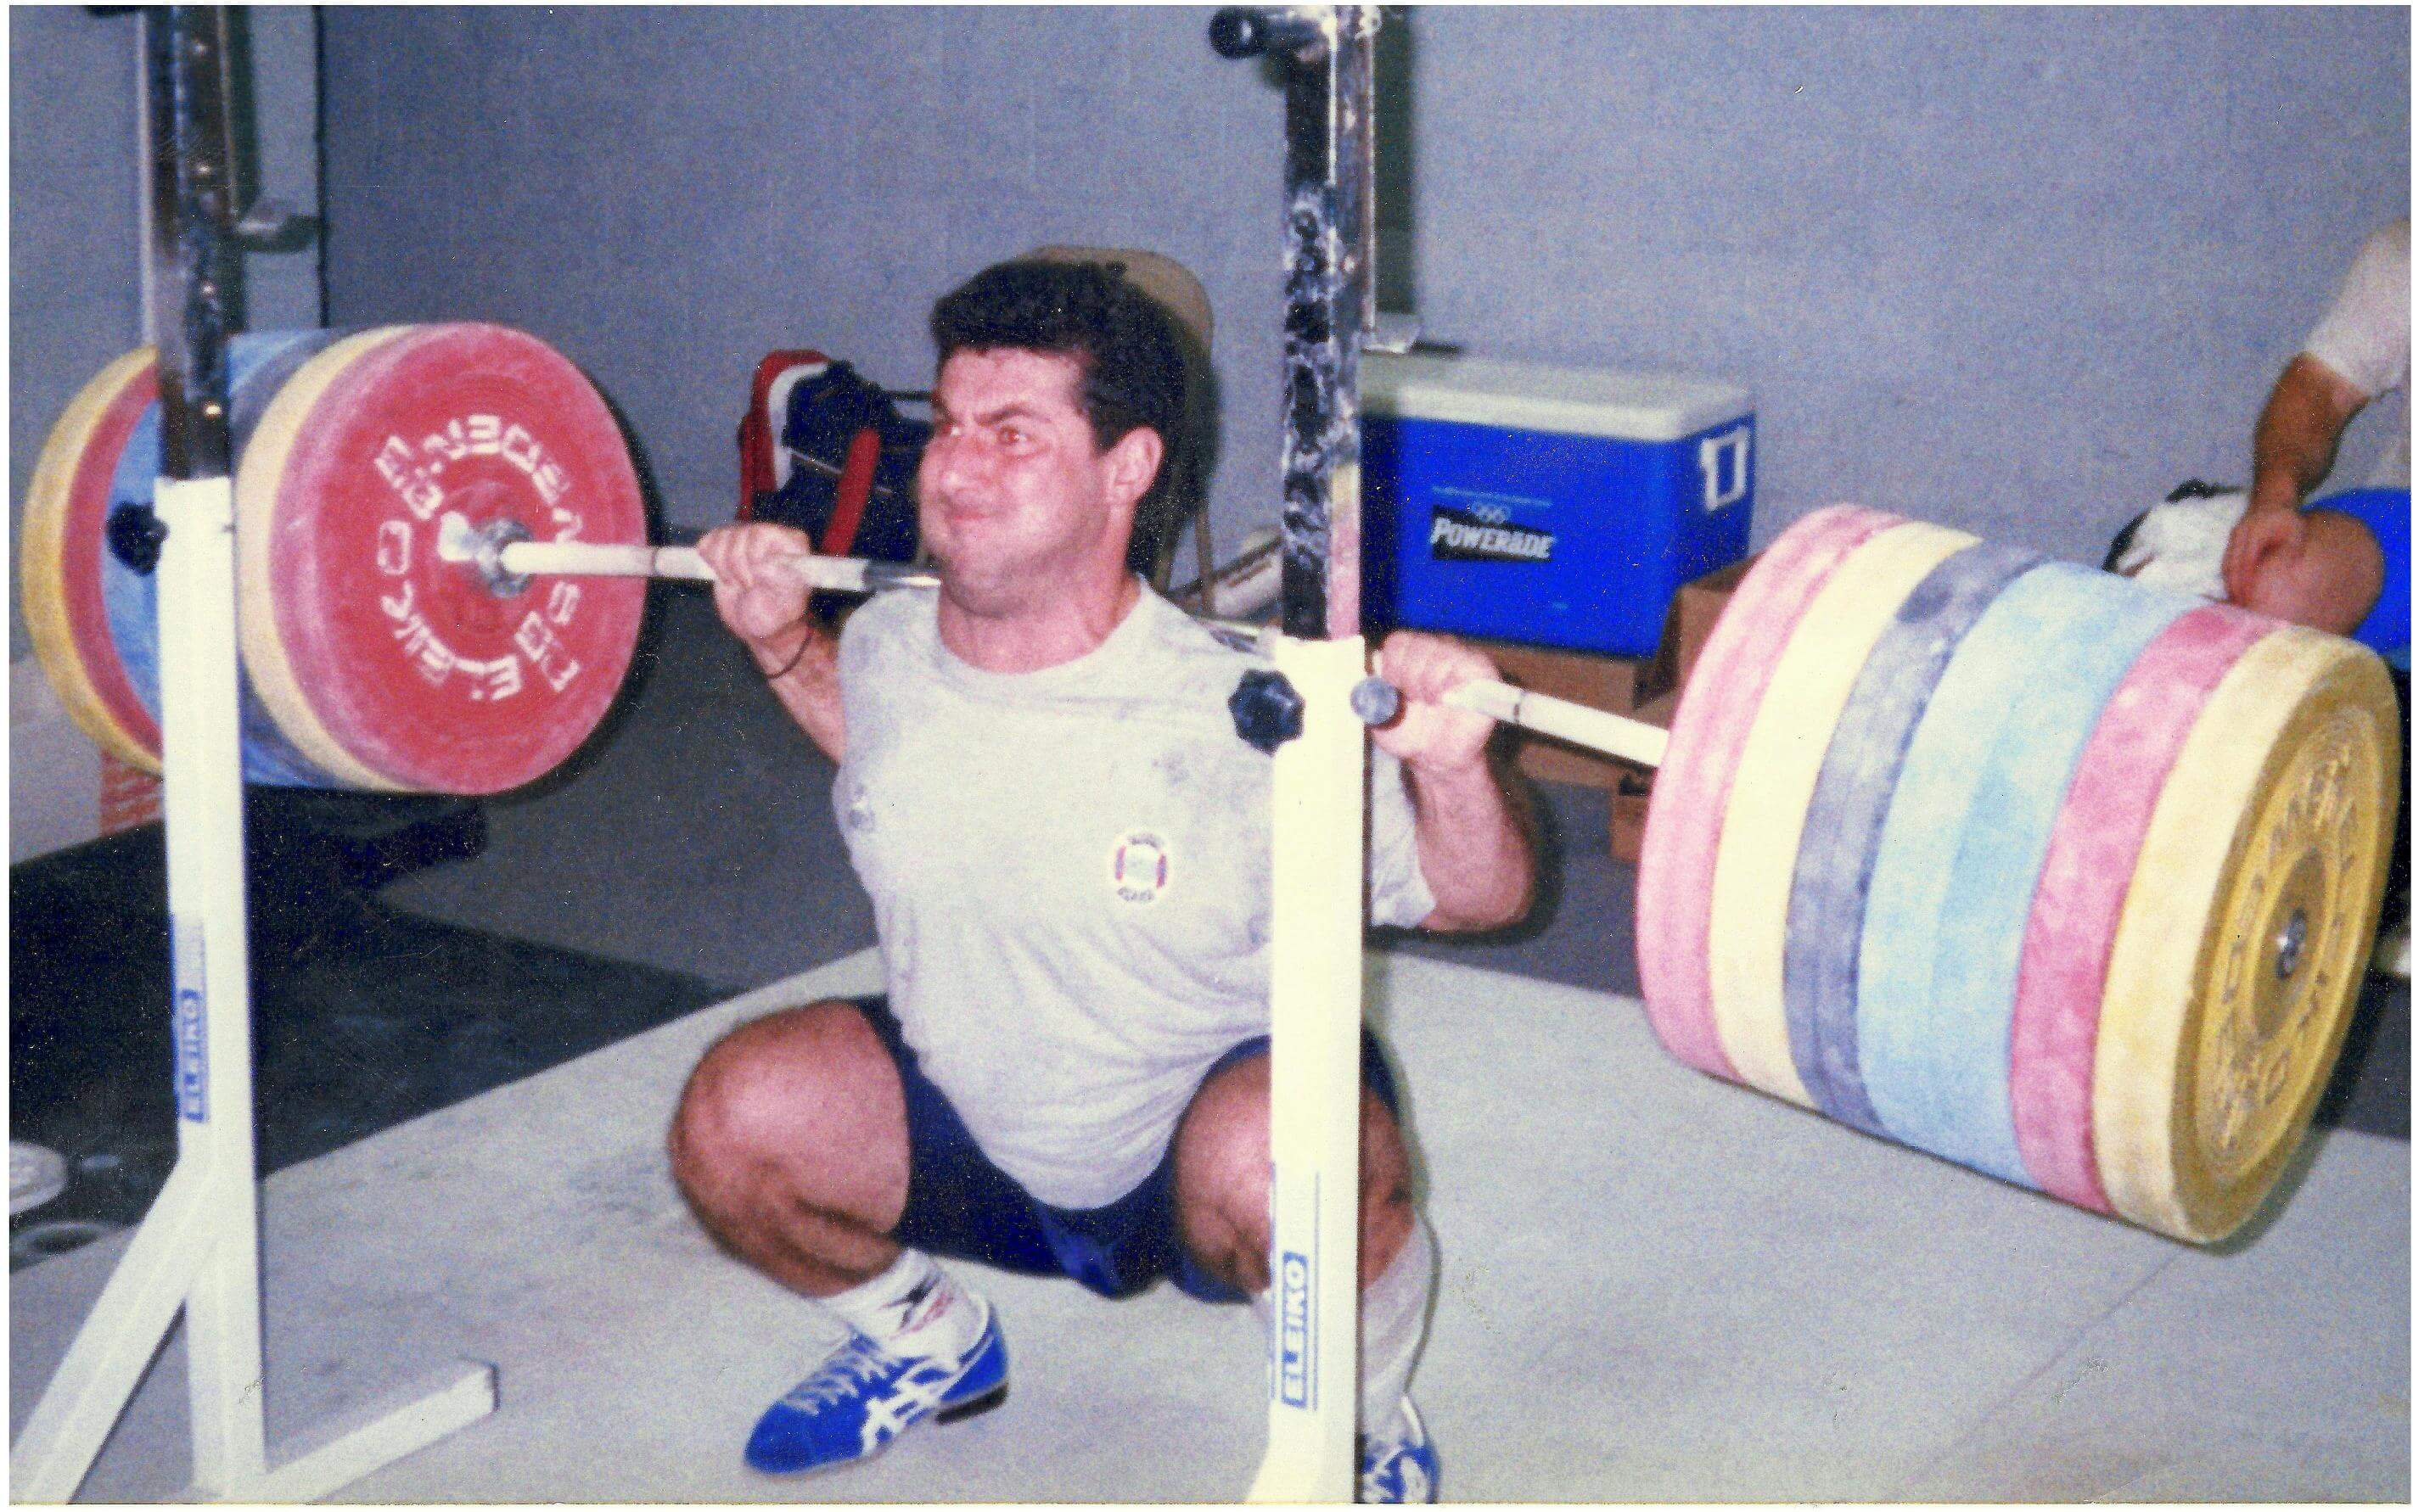 d4632a5694eae0 High Bar and Low Bar Squatting 2.0 - Strengtheory